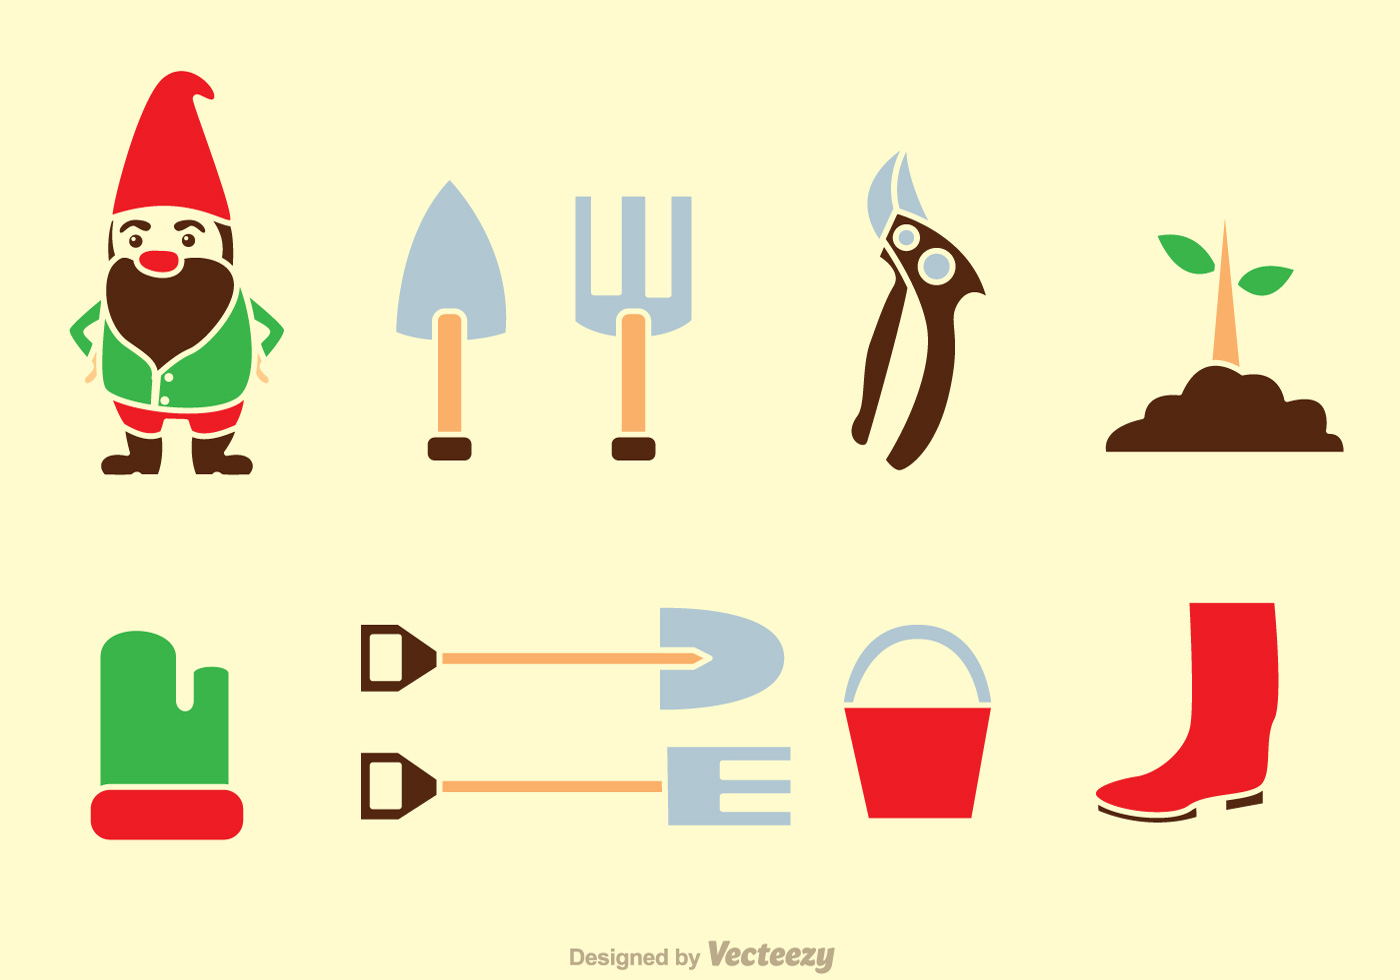 Gardening tools icons download free vector art stock for Gardening tools vector